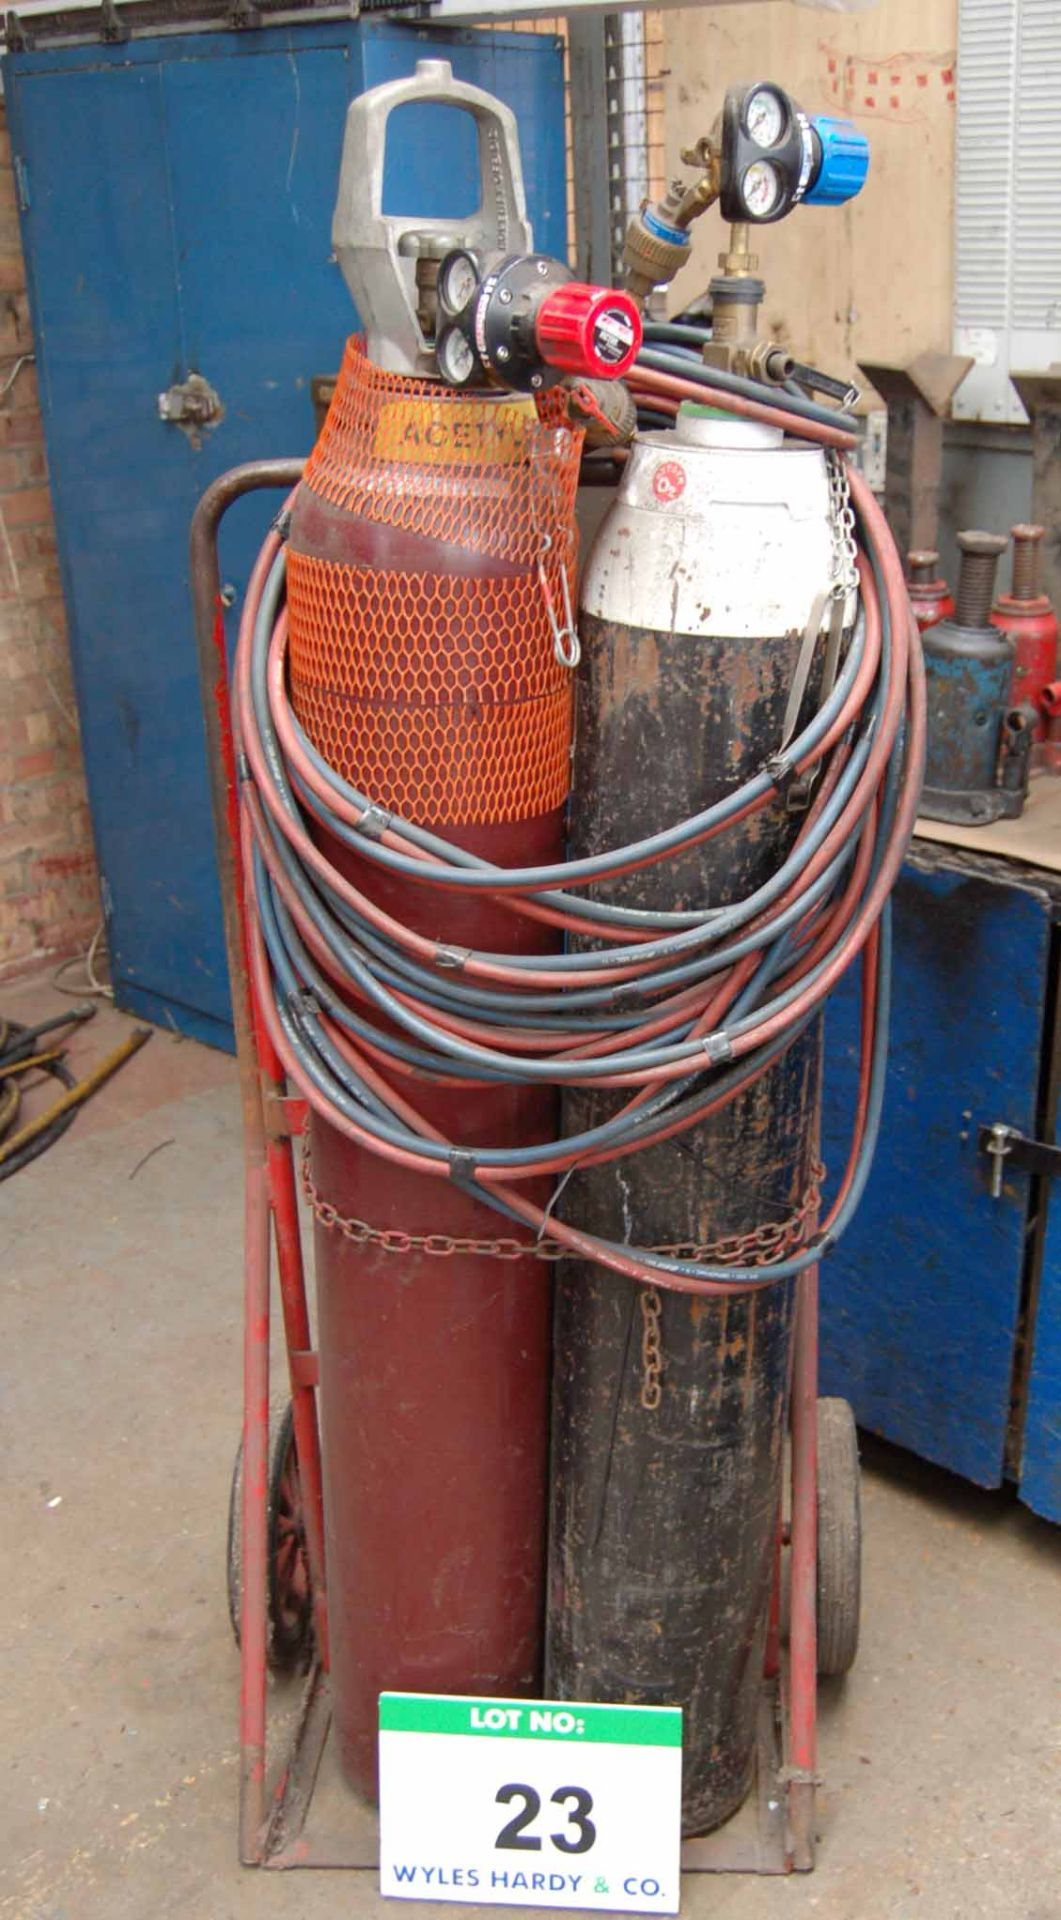 Lot 23 - An Oxy-Acetylene Welding Set with Steel Twin Bottle Trolley Regulators, Hose and Lance (Bottles